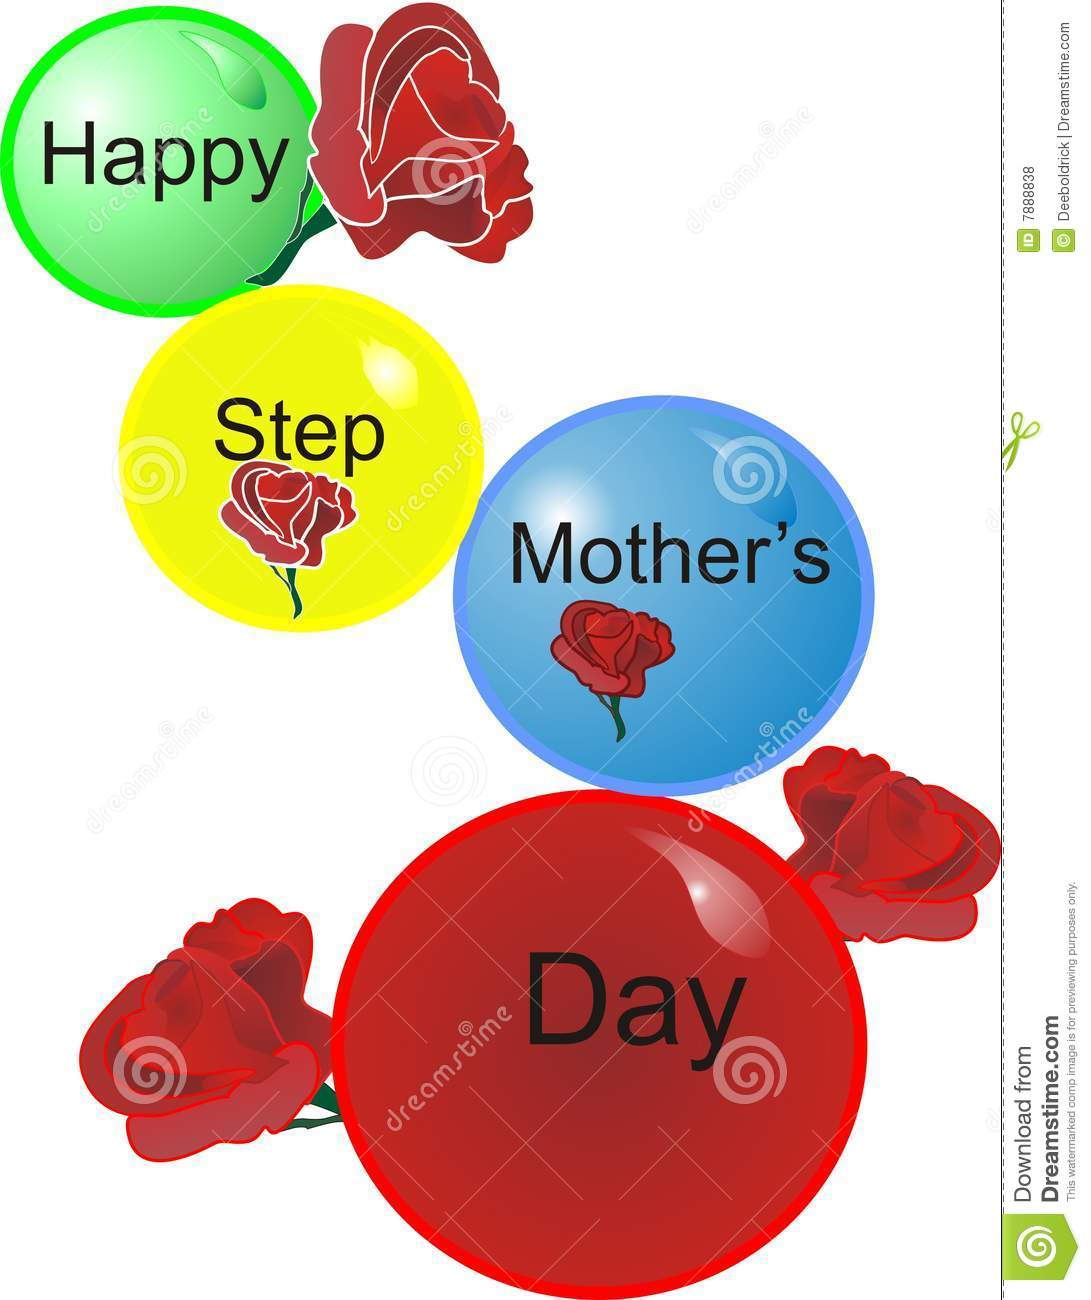 images Happy Step Mothers Day Images dreamstime com